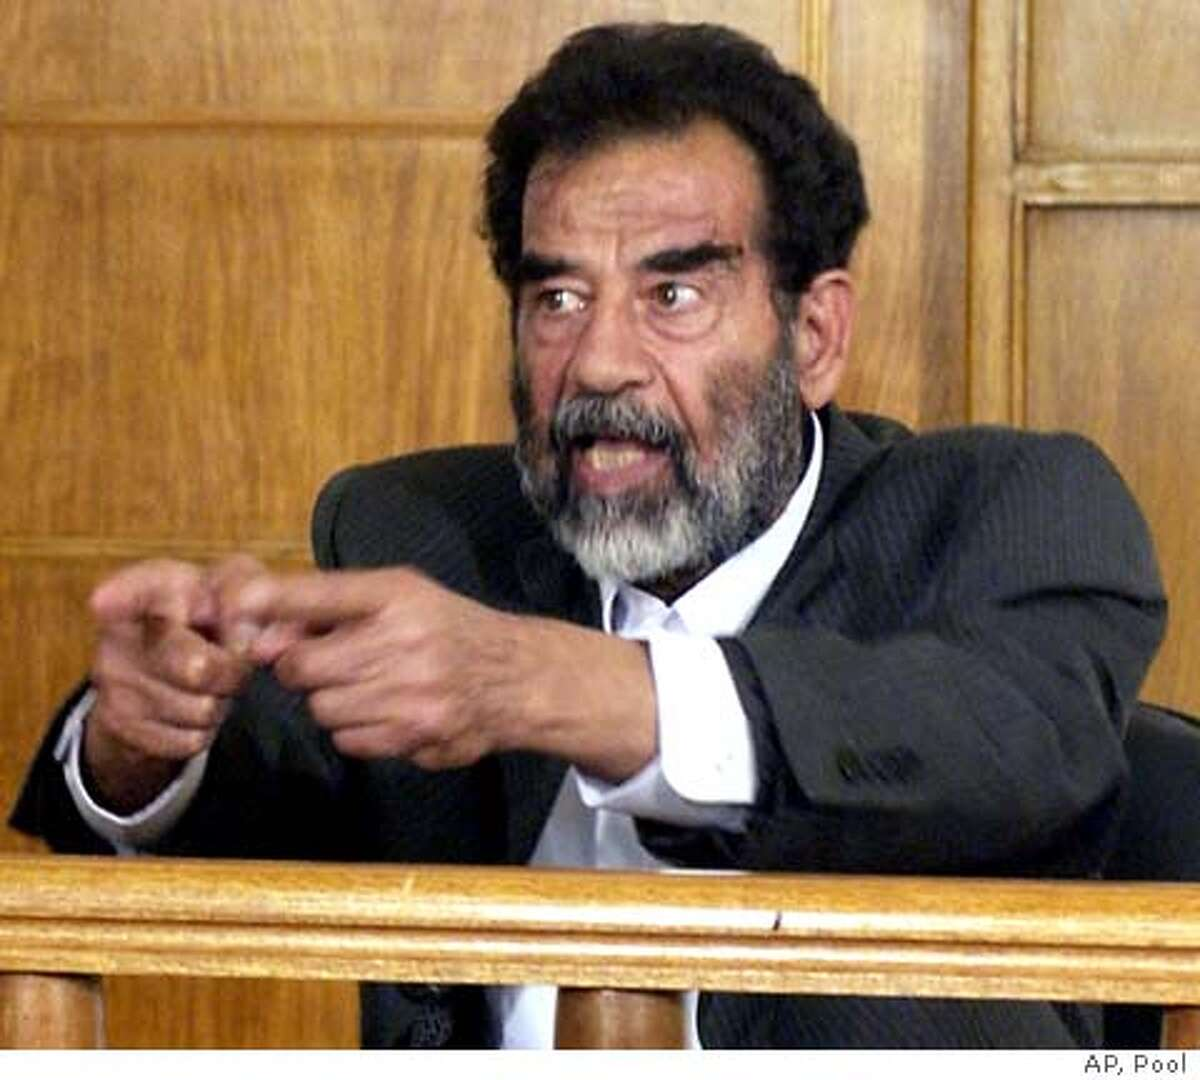 """Iraq's deposed dictator Saddam Hussein appears before an Iraqi tribunal in Baghdad, July 1, 2004. Downcast but defiant, Iraq's deposed dictator appeared before an Iraqi tribunal on Thursday, refusing to recognize its authority and saying the """"real criminal"""" was U.S. President George W. Bush. REUTERS/HO"""